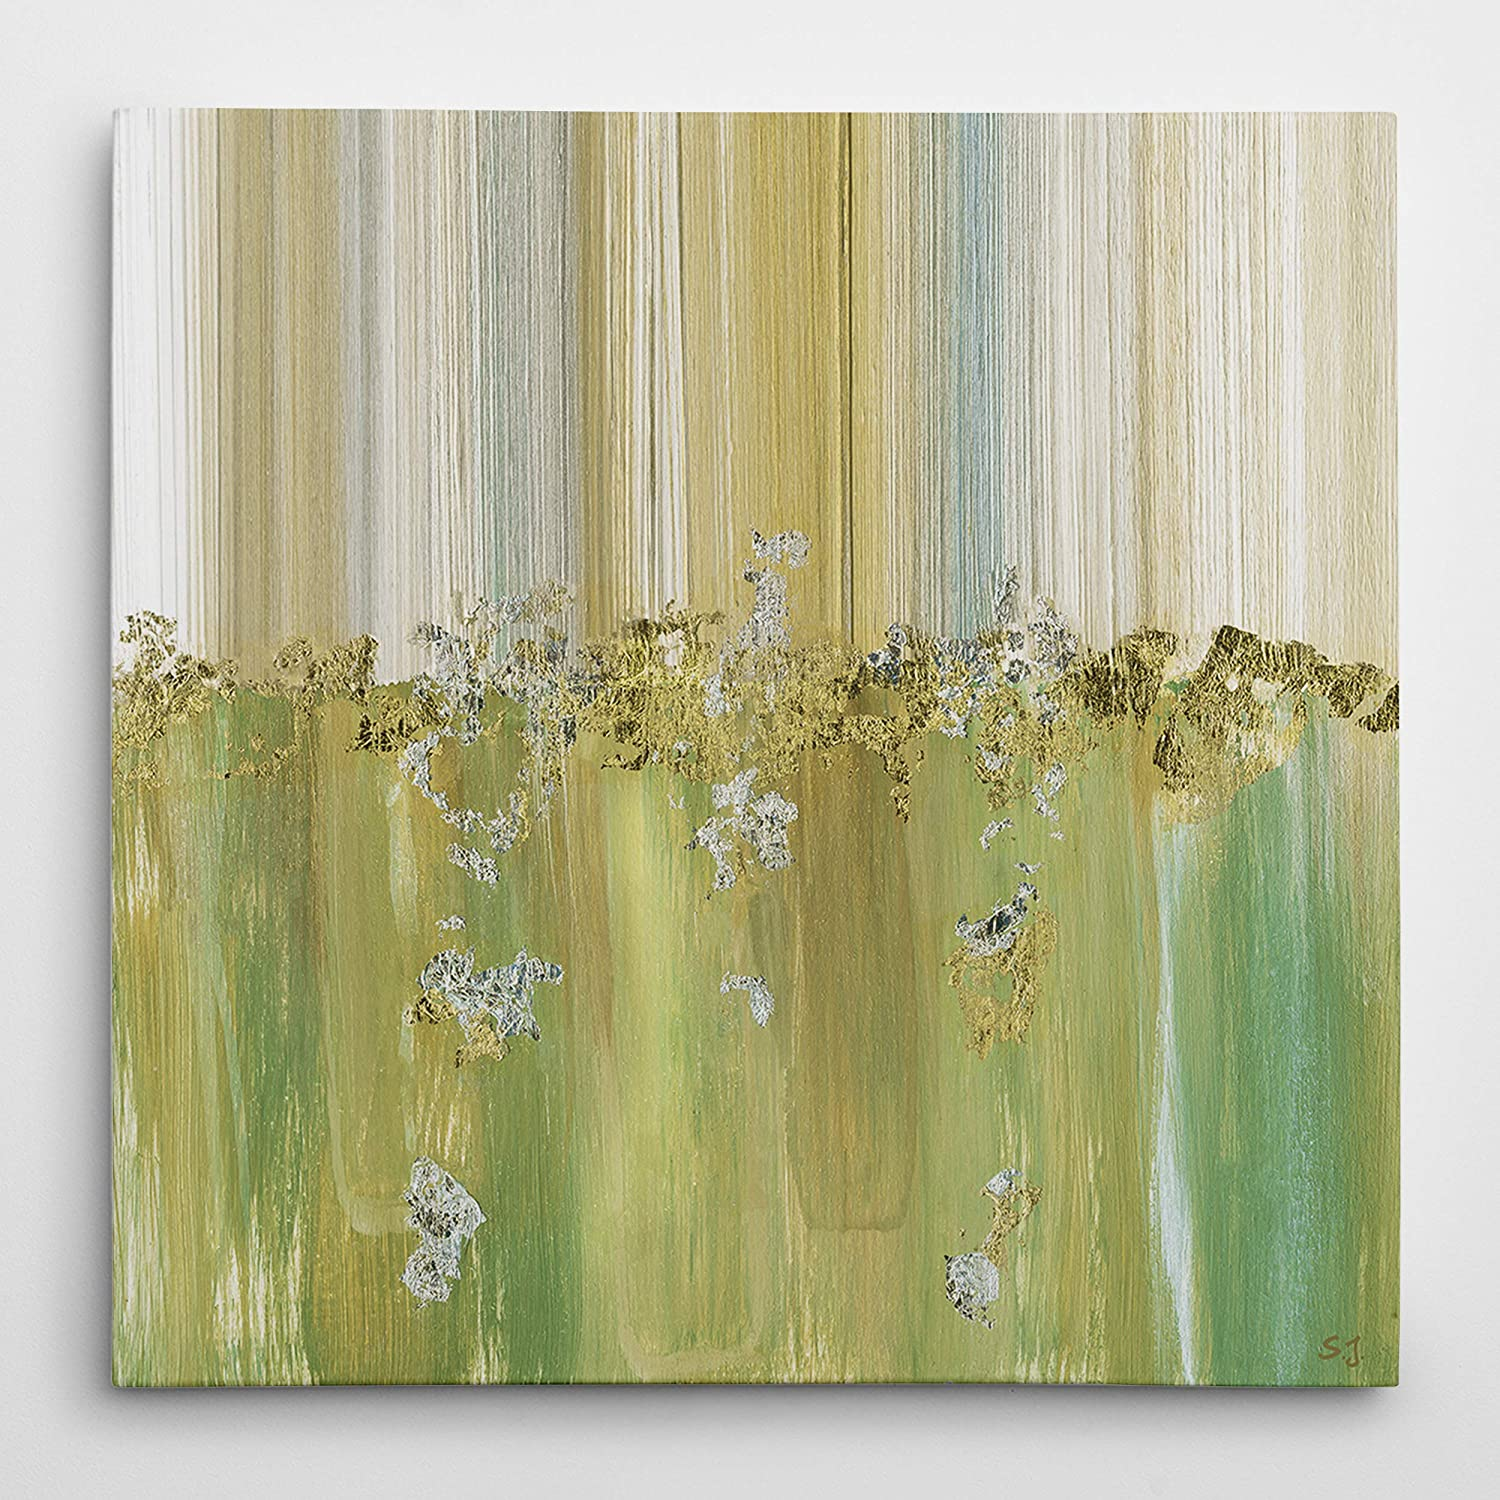 WEXFORD HOME Morning Dew II Gallery Wrapped Canvas Wall Art, 16x16